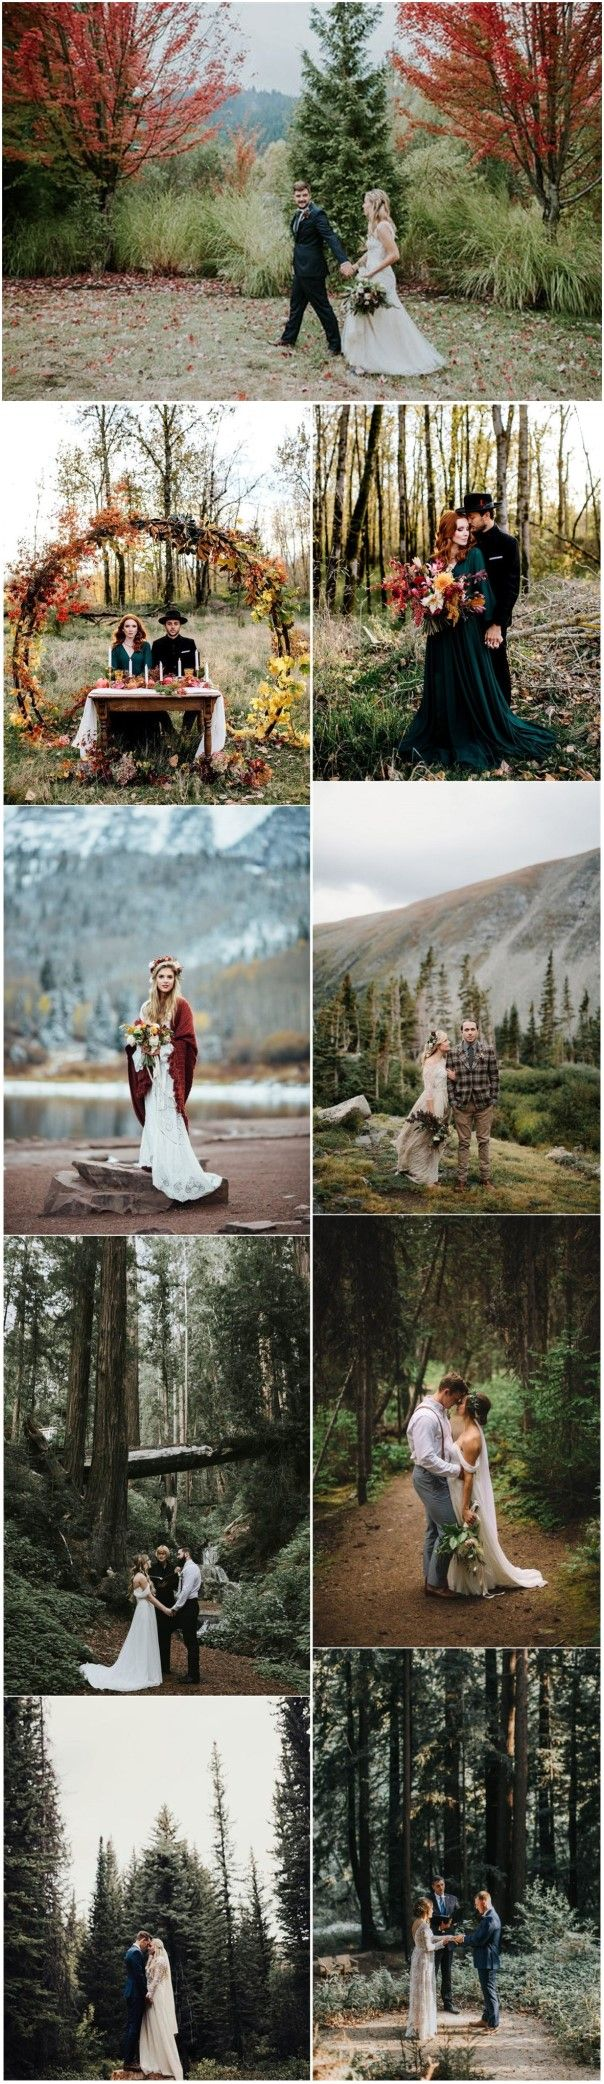 Fall Weddings »    Let's elope–27 Intimate Autumn Elopement Inspirations for Your Big Day » ❤️ More:    http://www.weddinginclude.com/2017/09/lets-elope-intimate-autumn-elopement-inspirations-for-your-big-day/